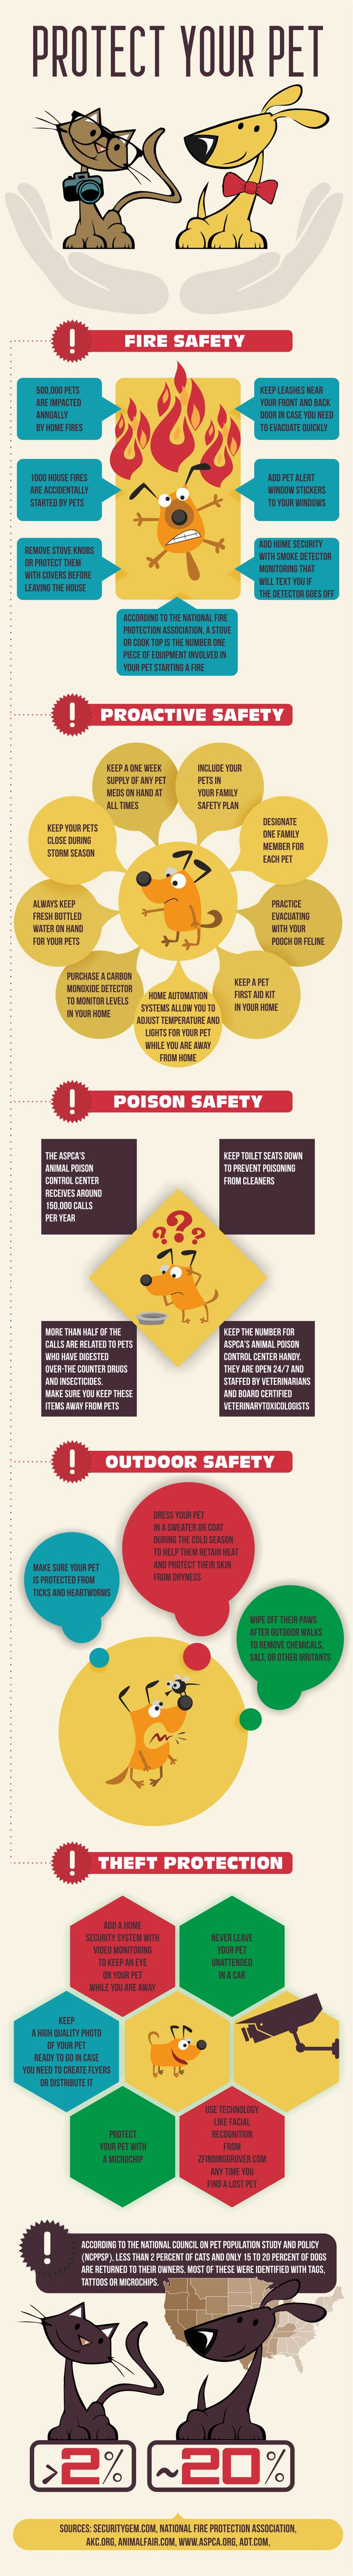 How Long Can I Leave my Dog Alone? - SecurityGem - Reliable Home Security Reviews and Information